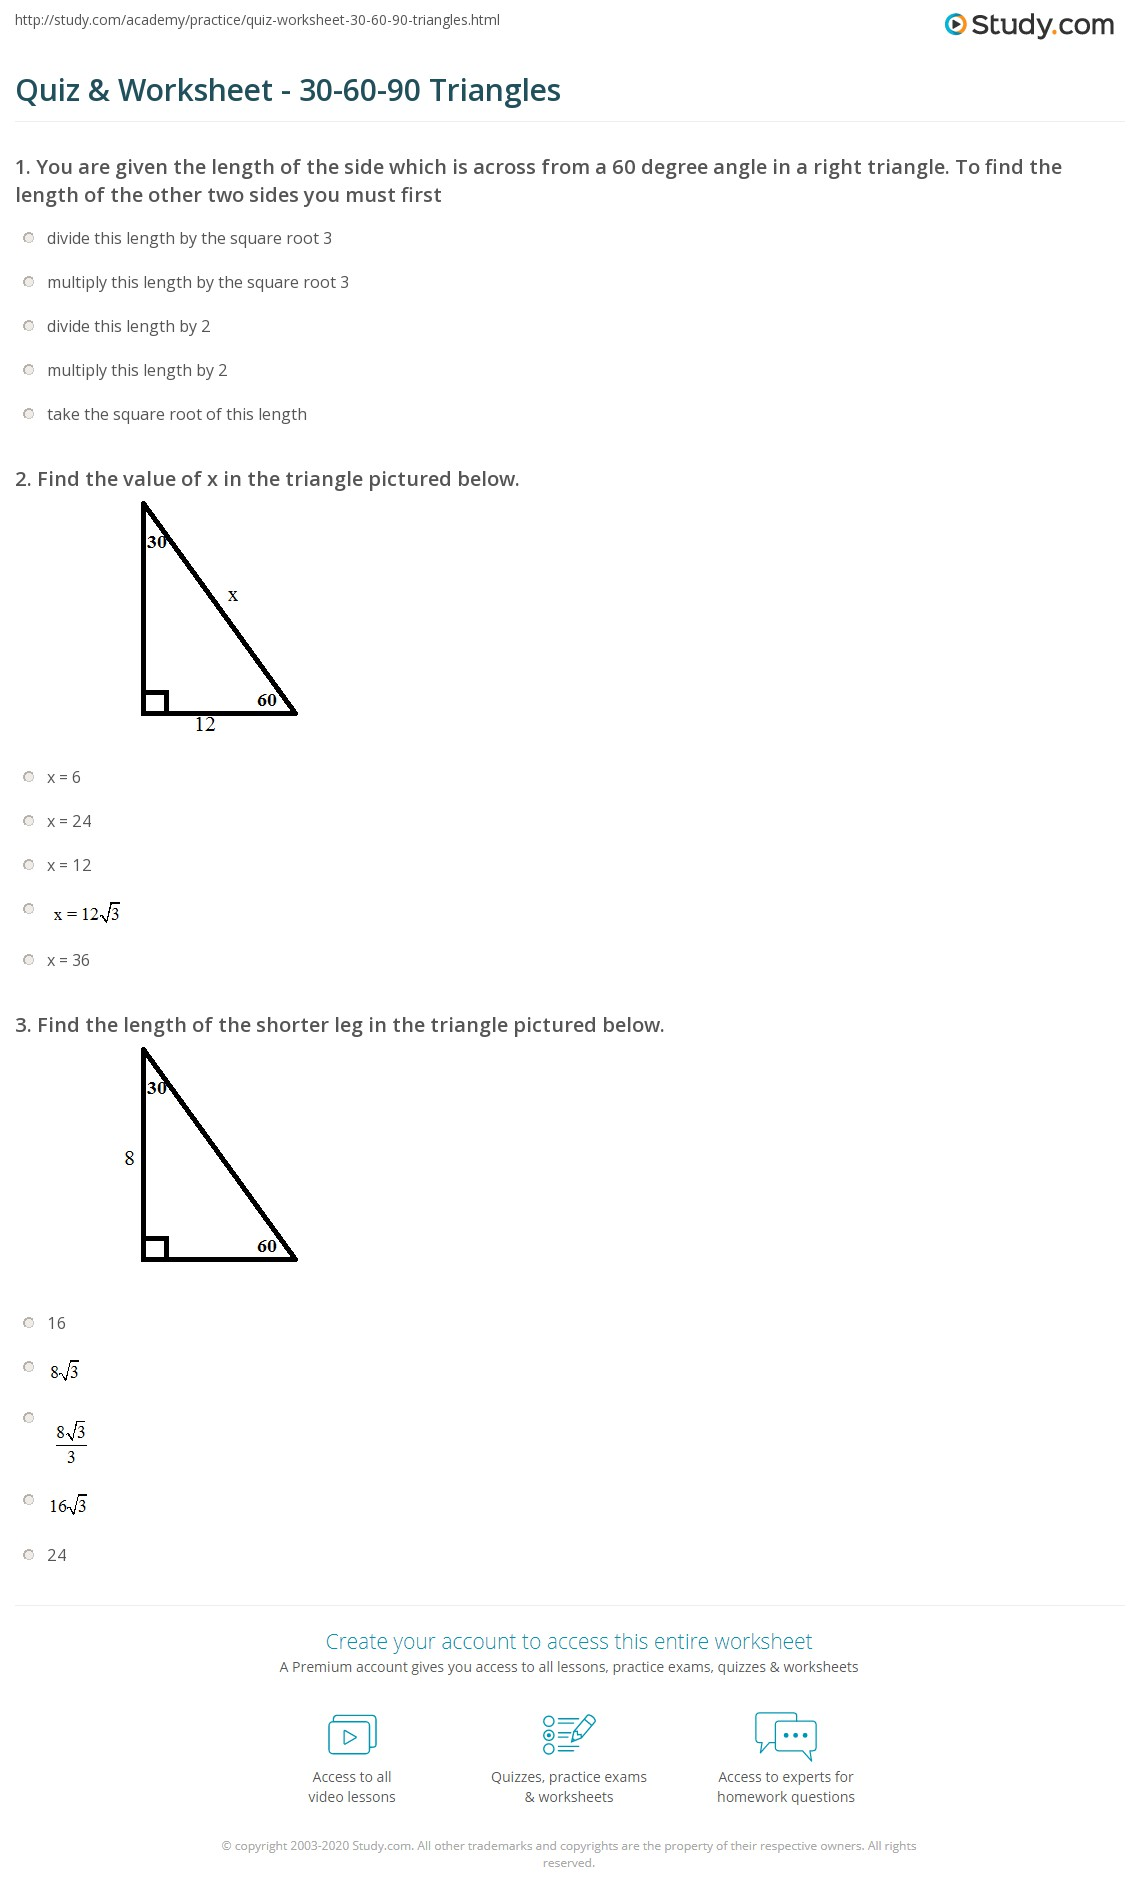 Printables 30-60-90 Triangles Worksheet quiz worksheet 30 60 90 triangles study com print triangle theorem properties formula worksheet